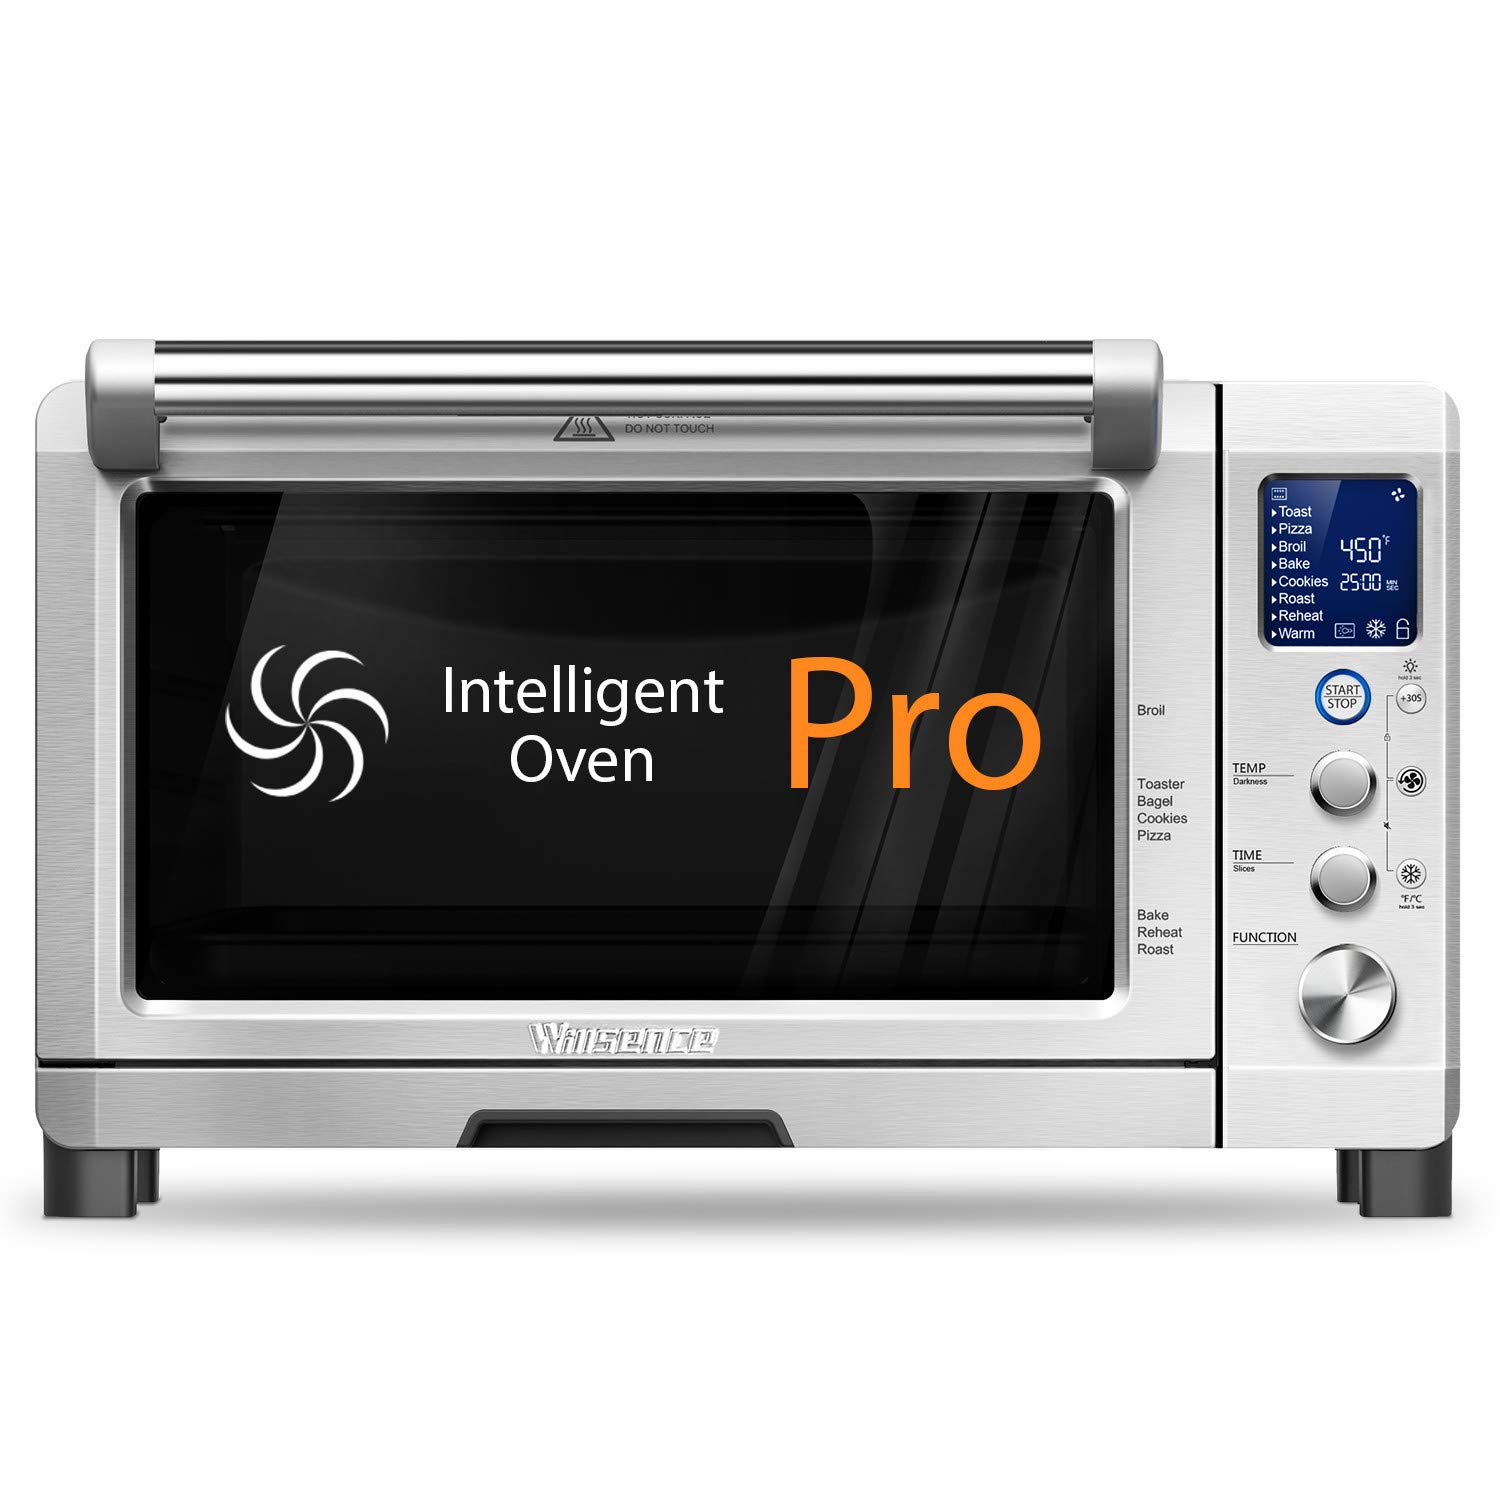 Toaster Oven Willsence Convection Toaster Oven with LCD Display and Element IQ, 6 Slice Toaster Oven with 9 Pre-set Cooking Functions, Brushed Stainless Steel,1800W by Willsence